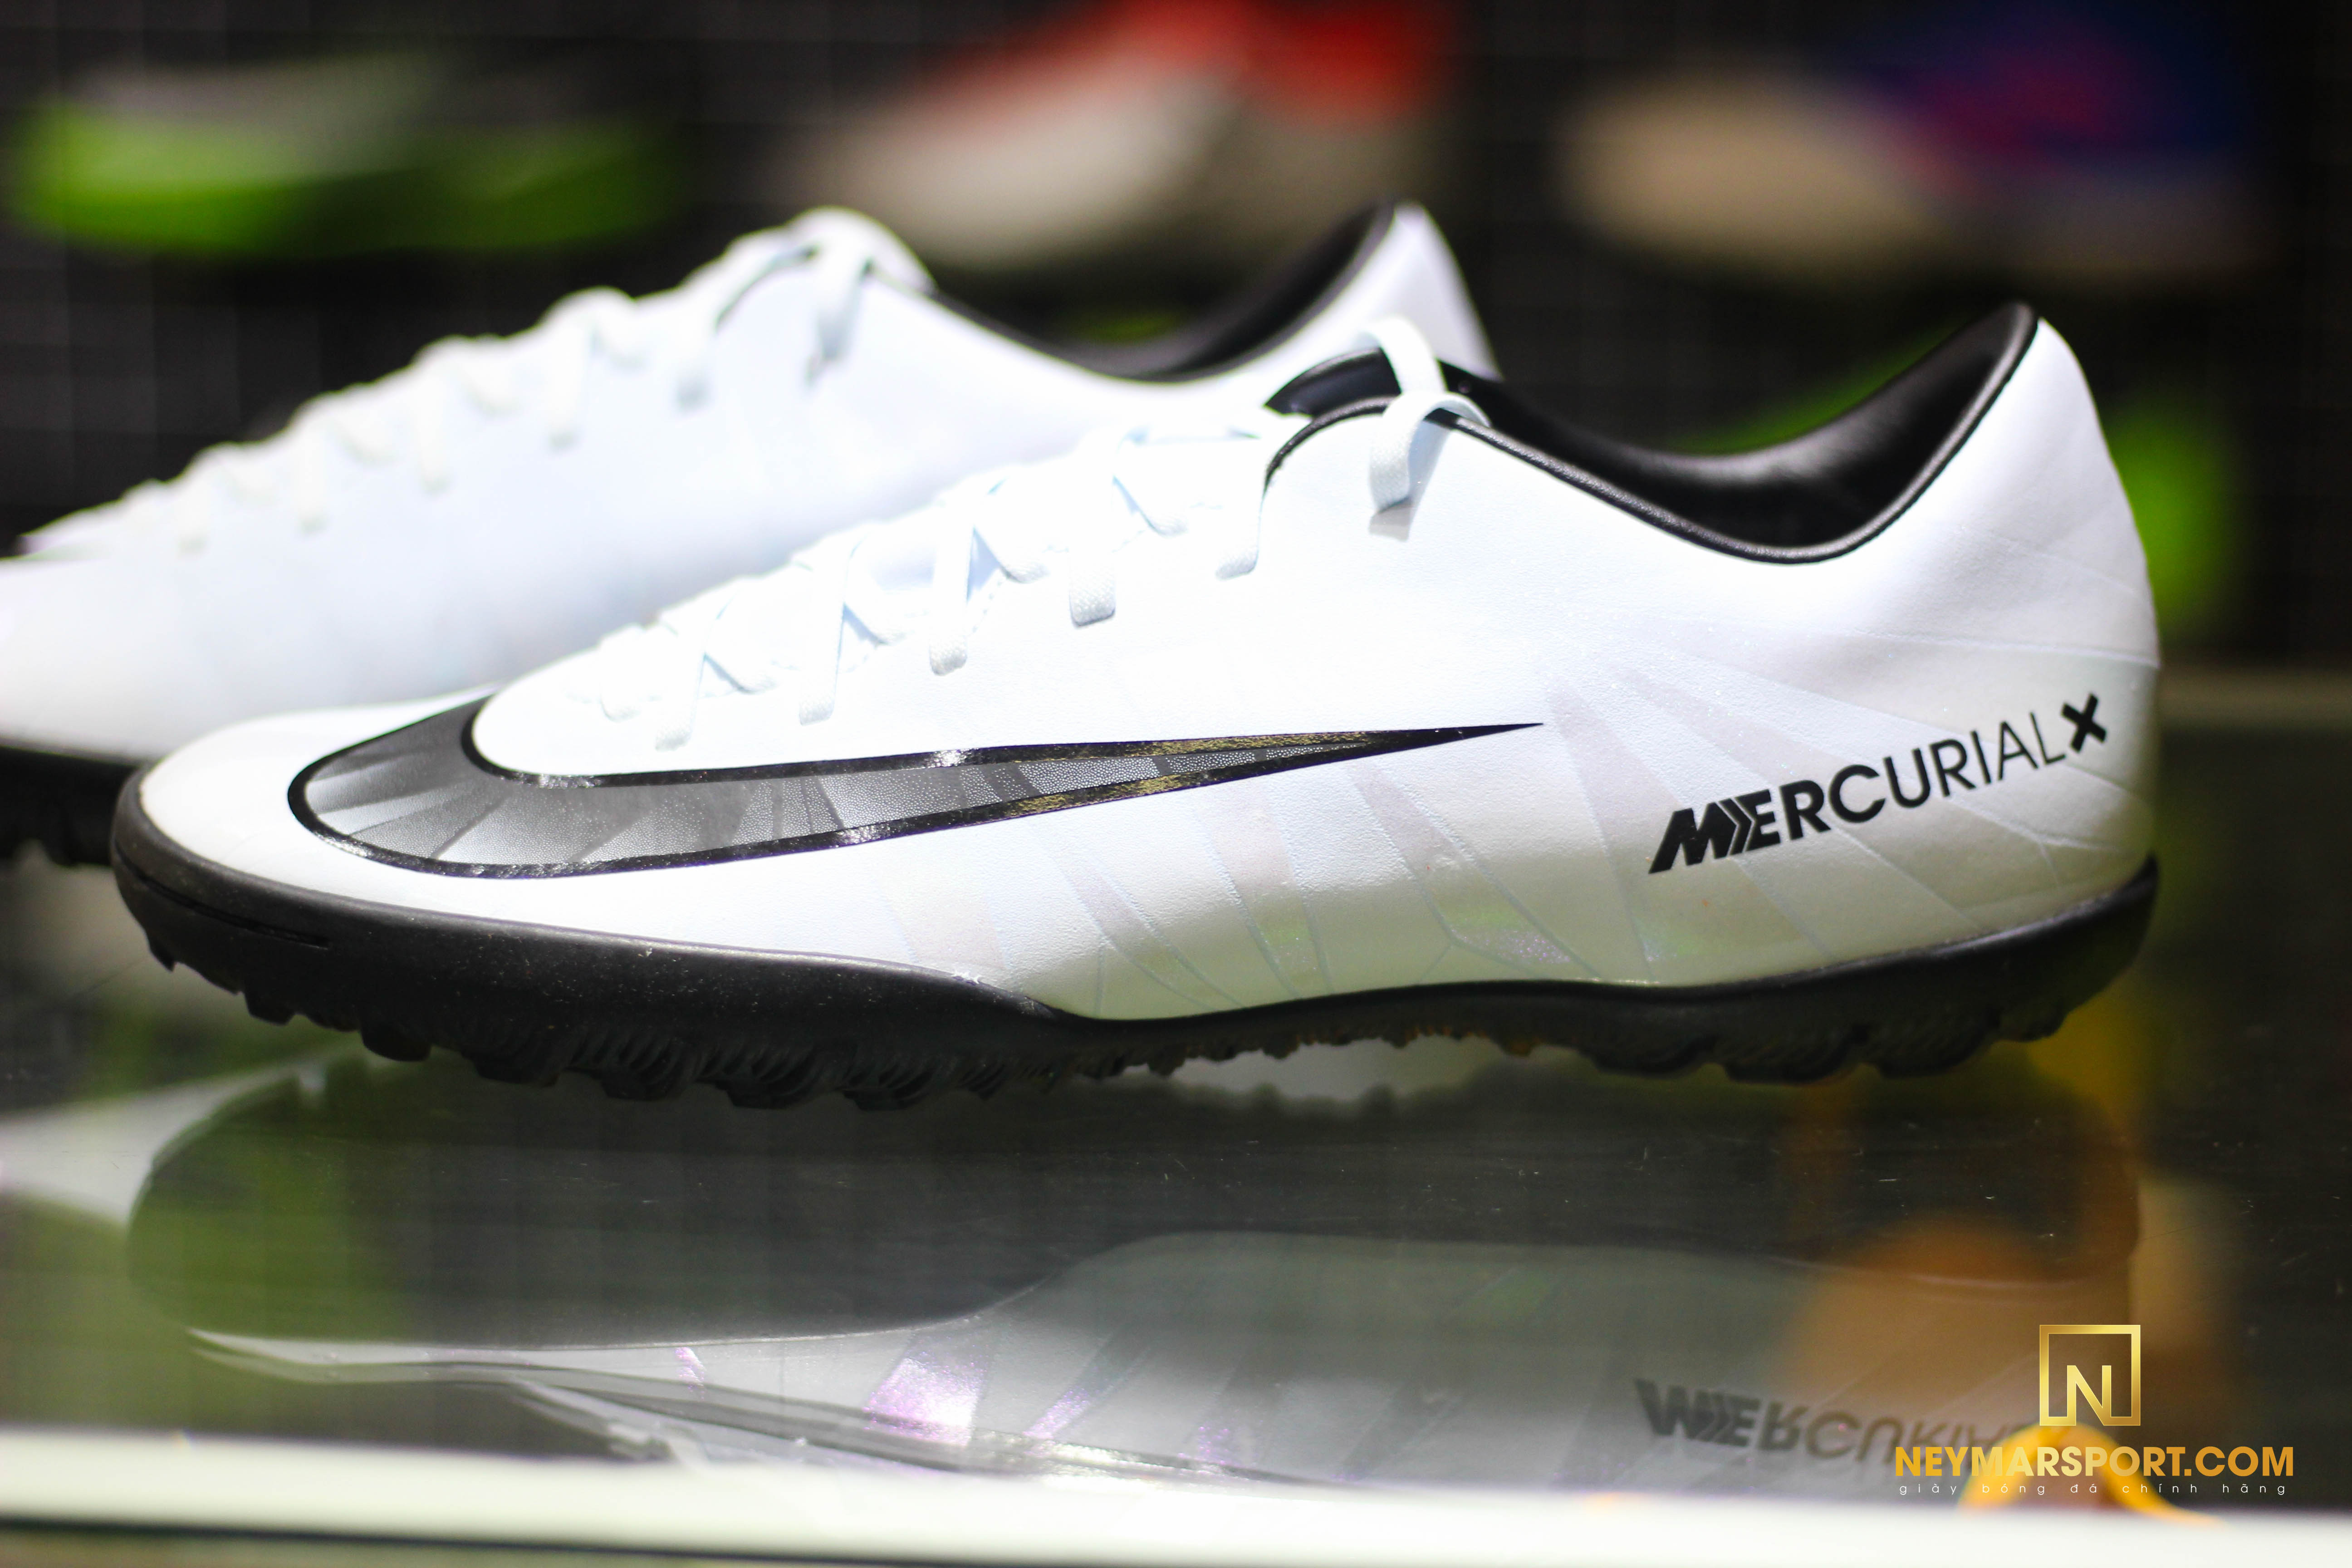 2bff0bc8780 ... chắc chắnNike MercurialX Victory VI CR7 Chapter 5  Cut to brilliance TF  - Blue Tint Black White là 1 sự lựa chọn không thể bỏ qua của các Fan CR7.